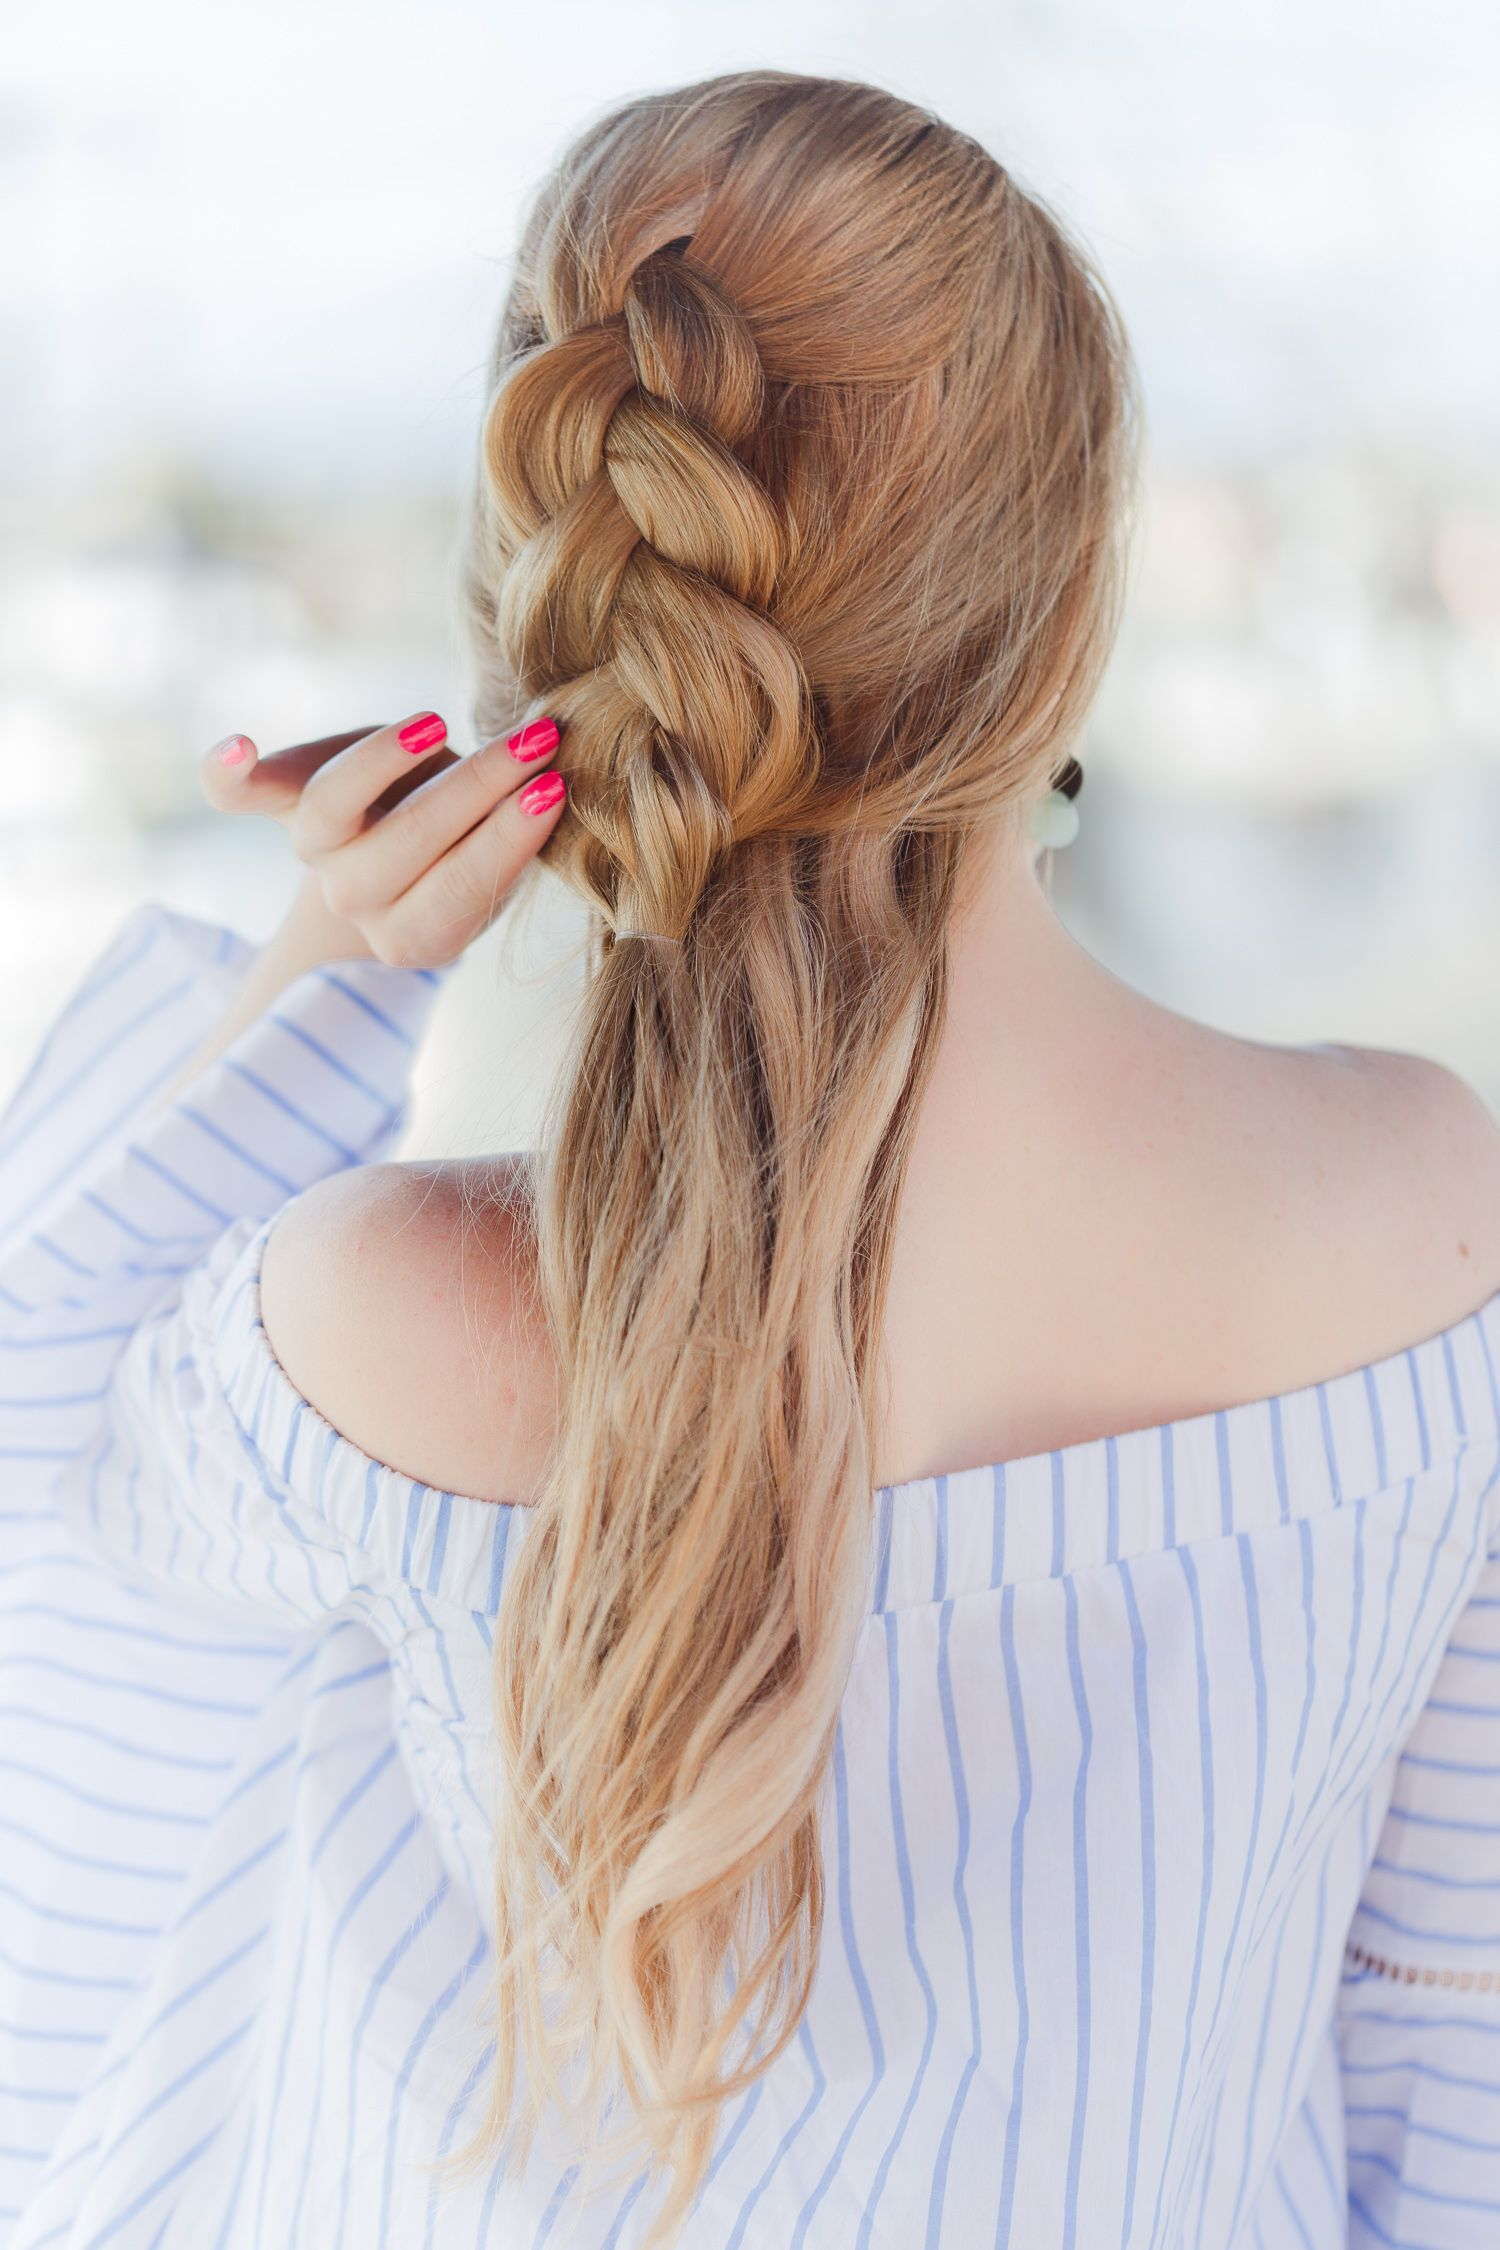 Beach Hairstyles Enchanting Half Up Dutch Braid Hairstyle And Beach Walk  Design Every Day